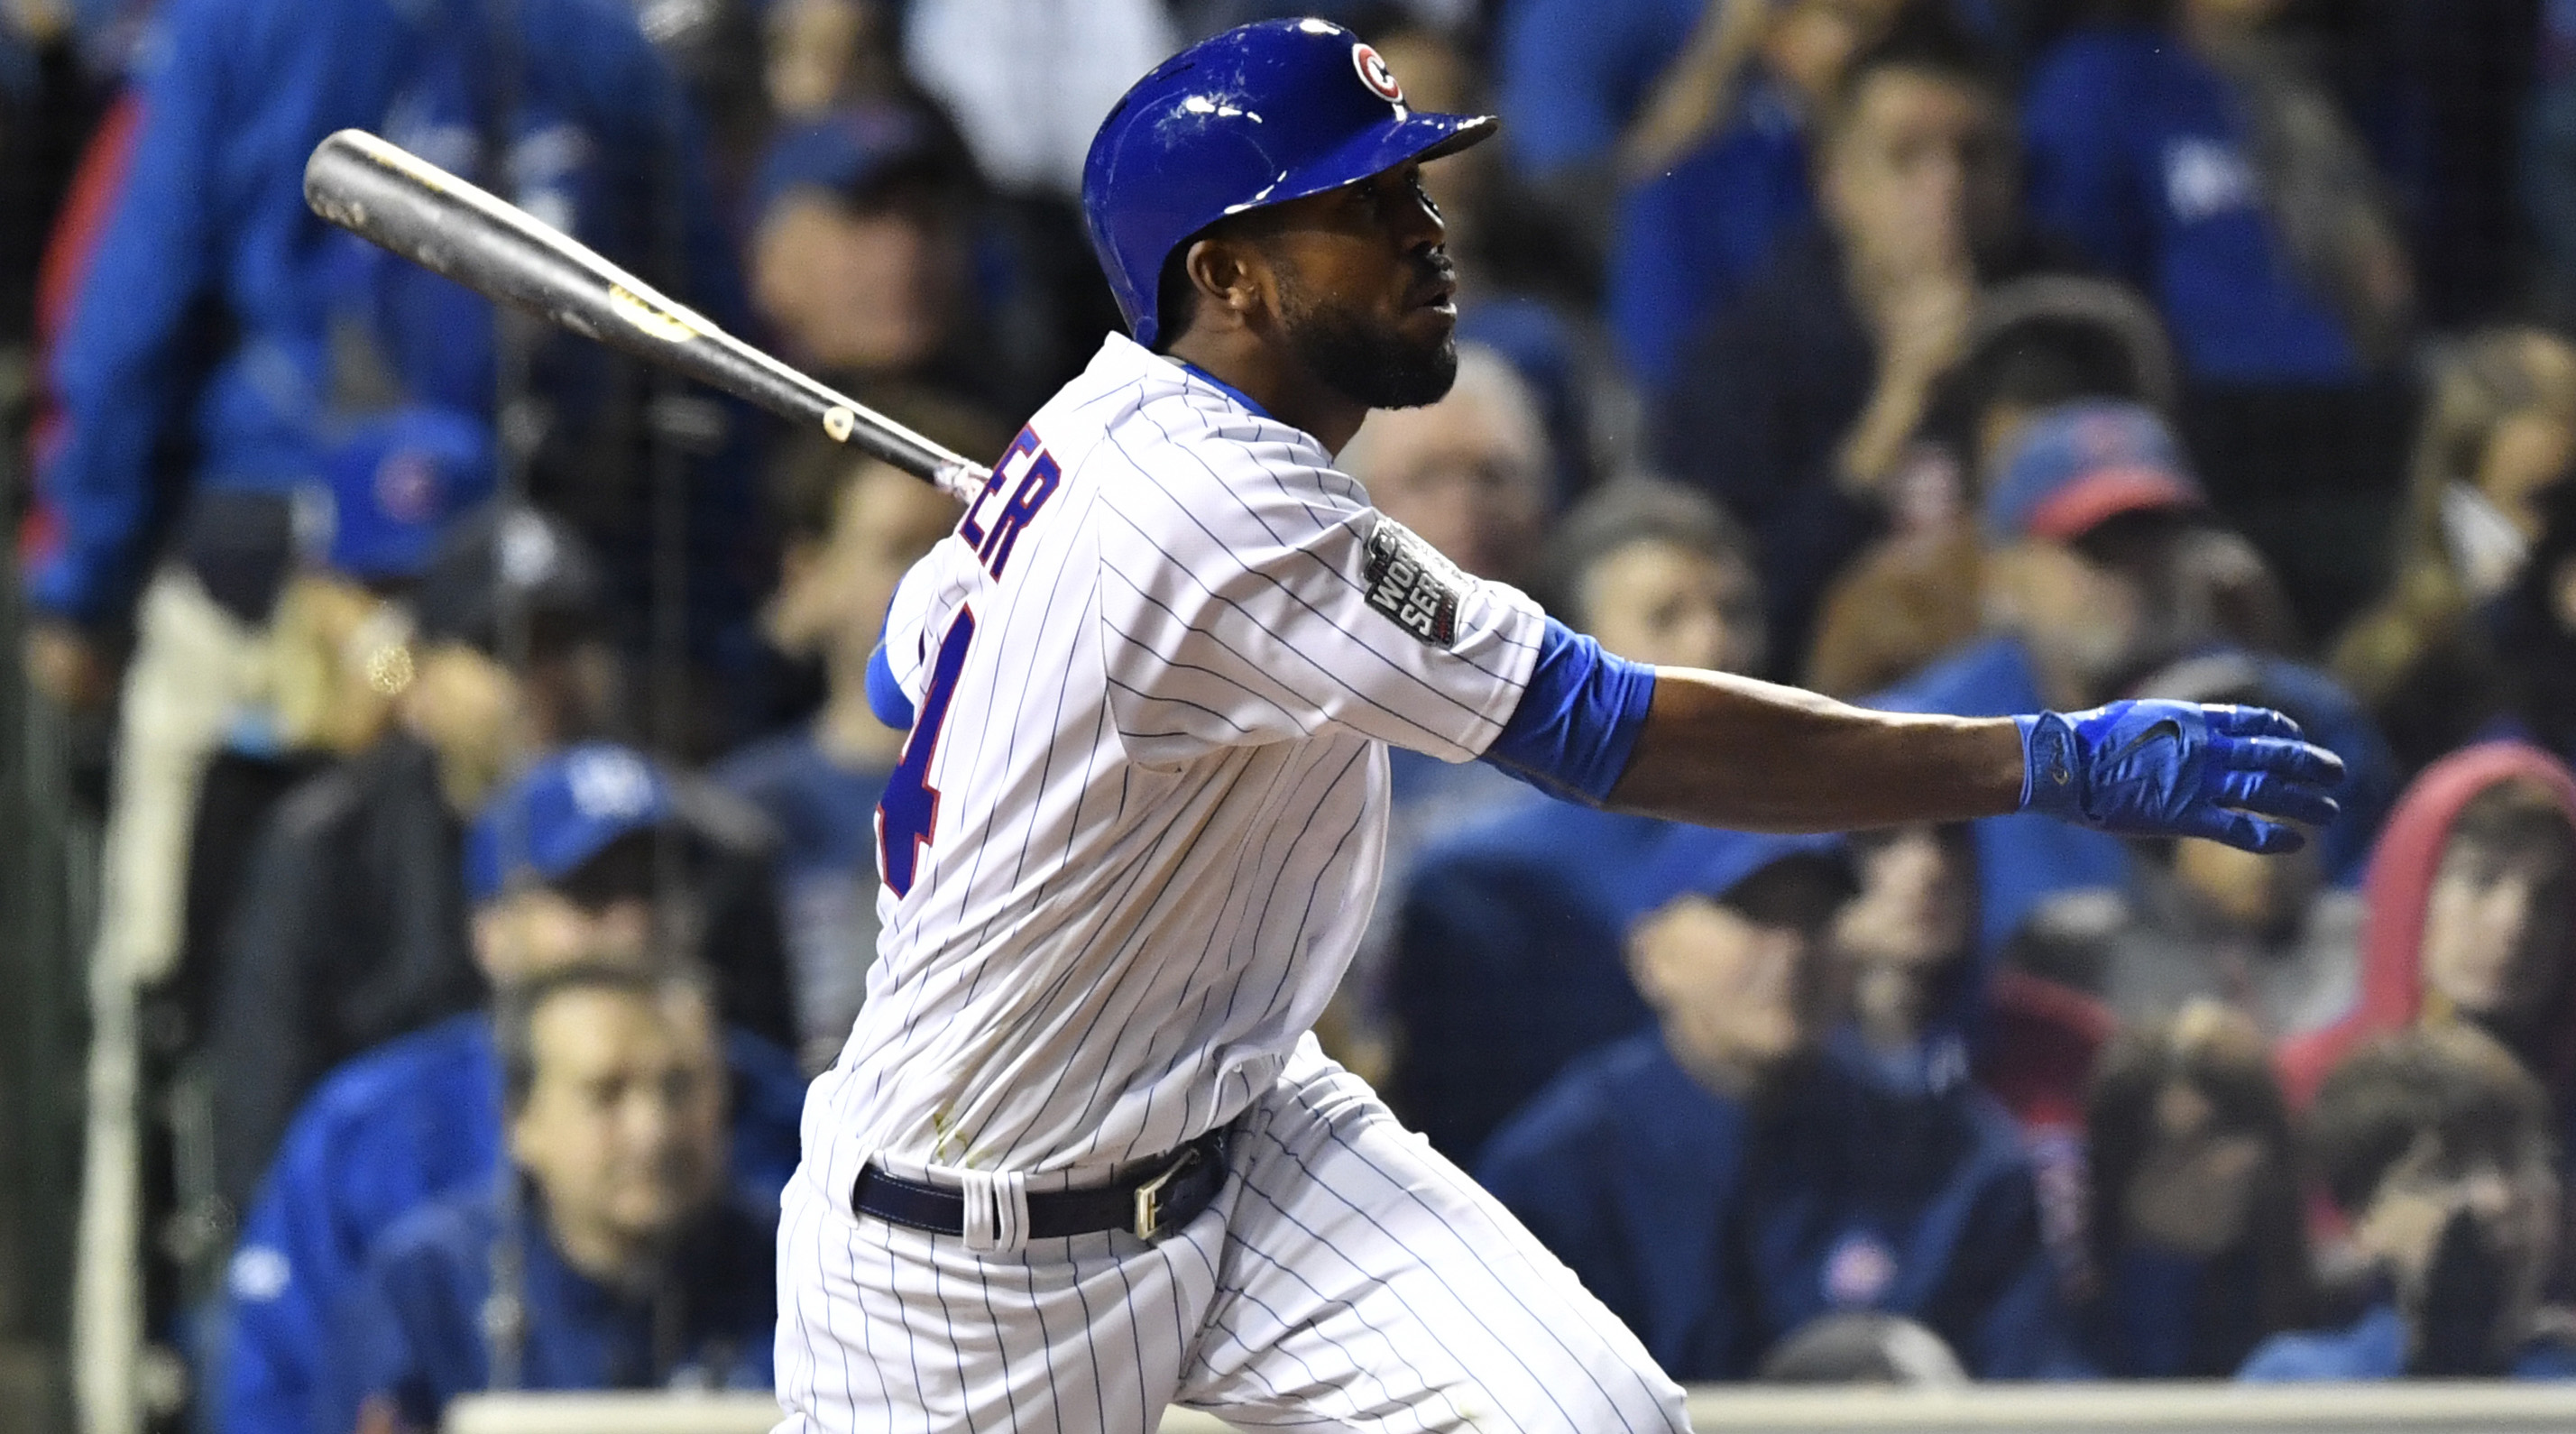 Internet goes wild after Dexter Fowler leads off World Series Game 7 with home run